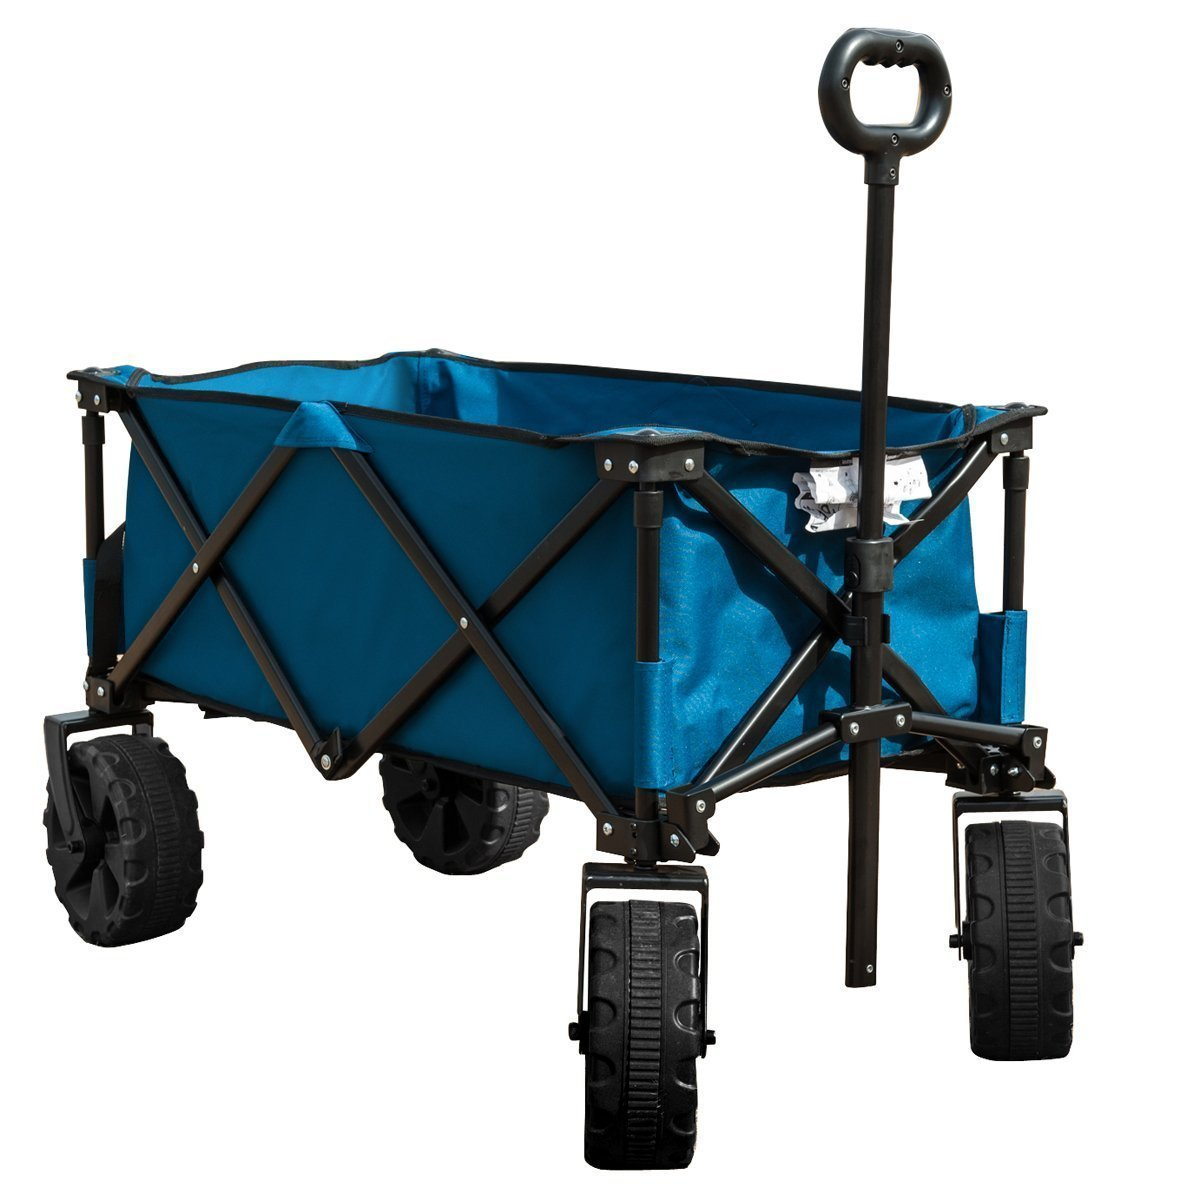 TC1014 Multipurpose Folding Utility Wagon With Adjustable Retractable Handle, B